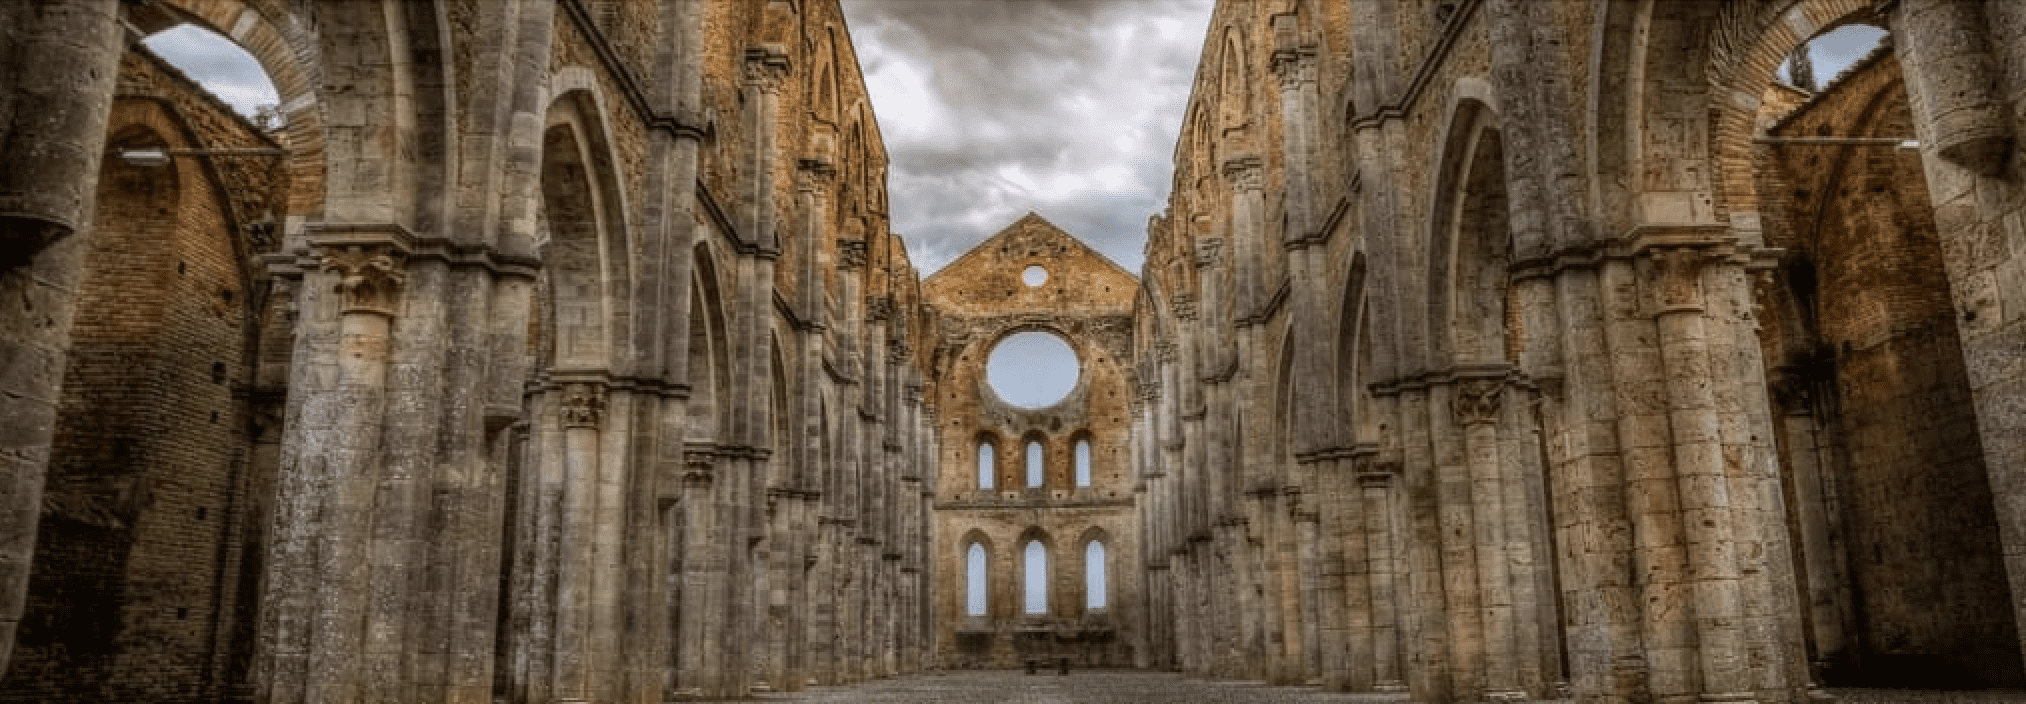 Abbey of San Galgano in Tuscany